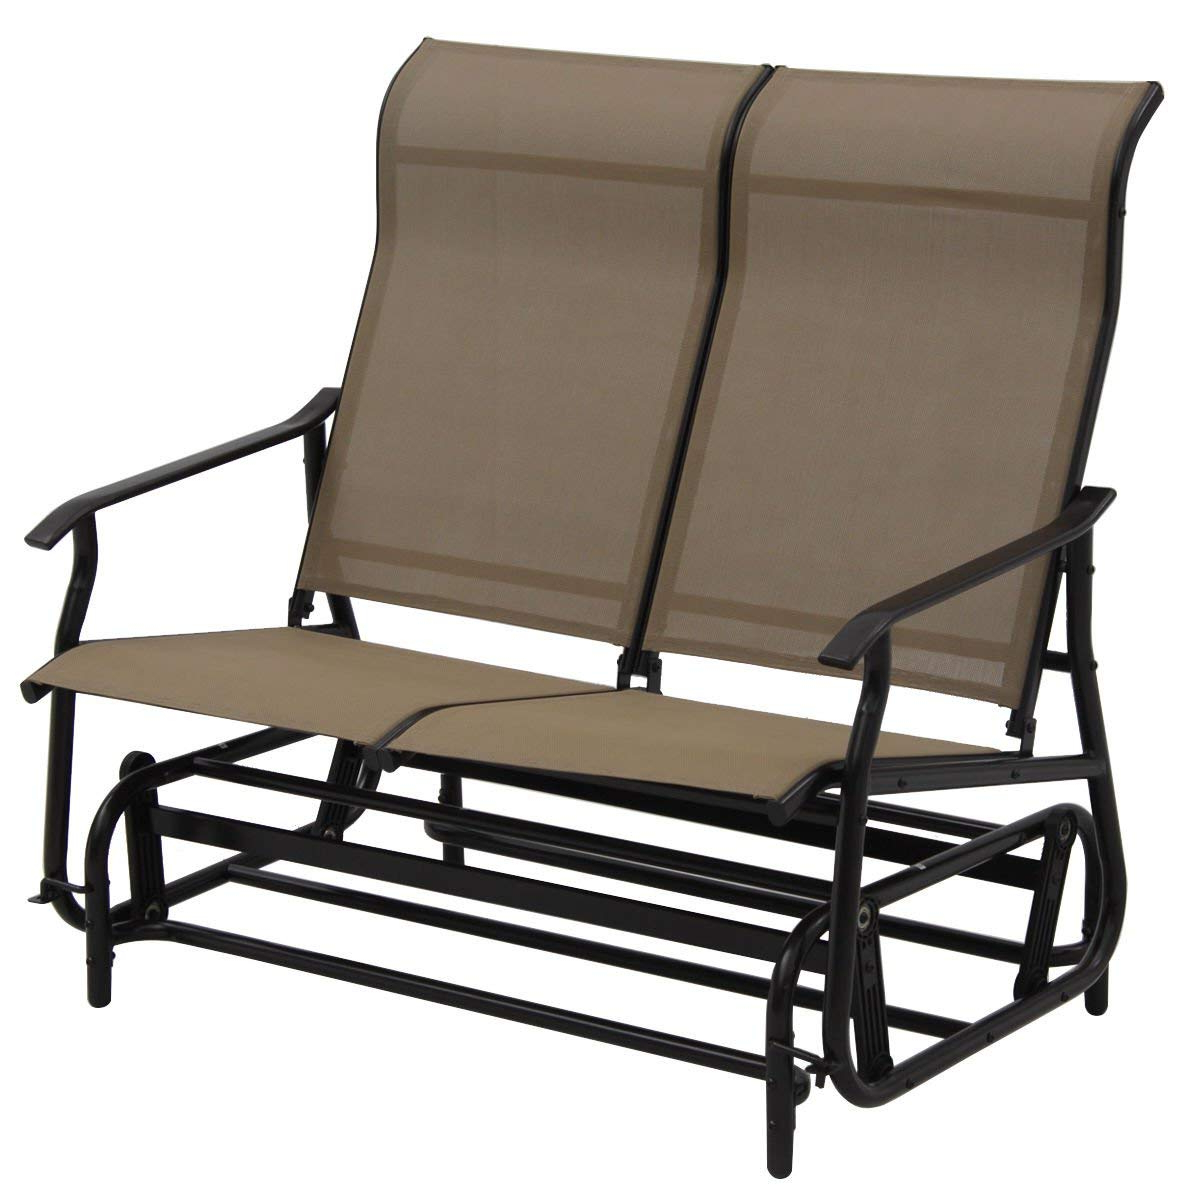 Most Recently Released Steel Patio Swing Glider Benches Throughout Amazon : Patio Swing Glider Bench For 2 Persons Rocking (View 30 of 30)